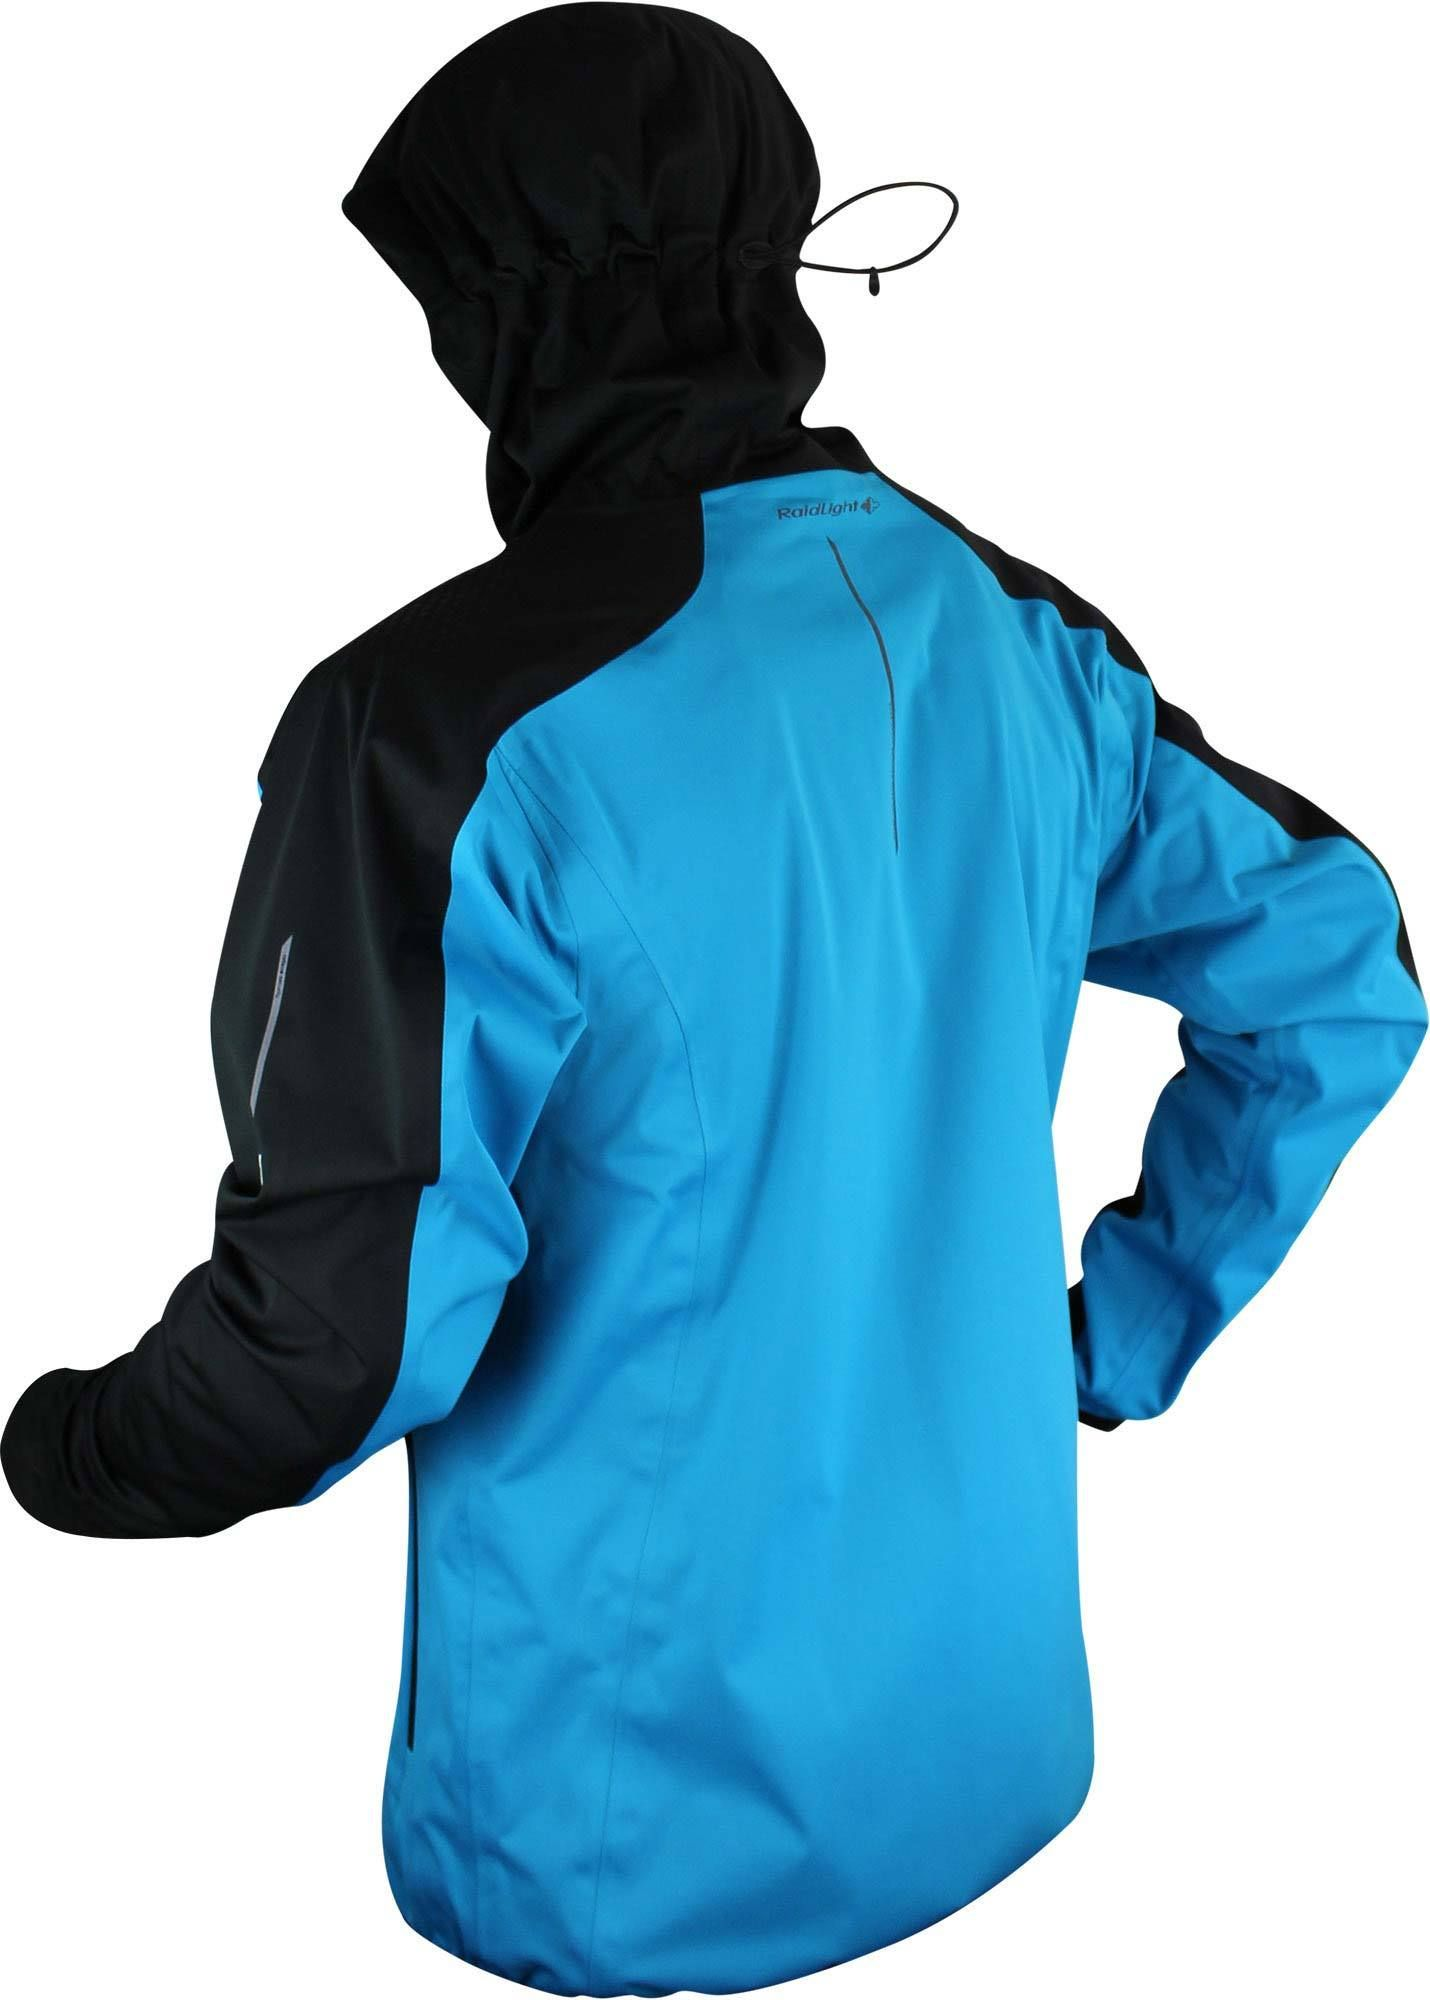 GIACCA RAIDLIGHT RAIDSHELL EVO JACKET GLGMJ12 BLUE BLACK BACK.jpg